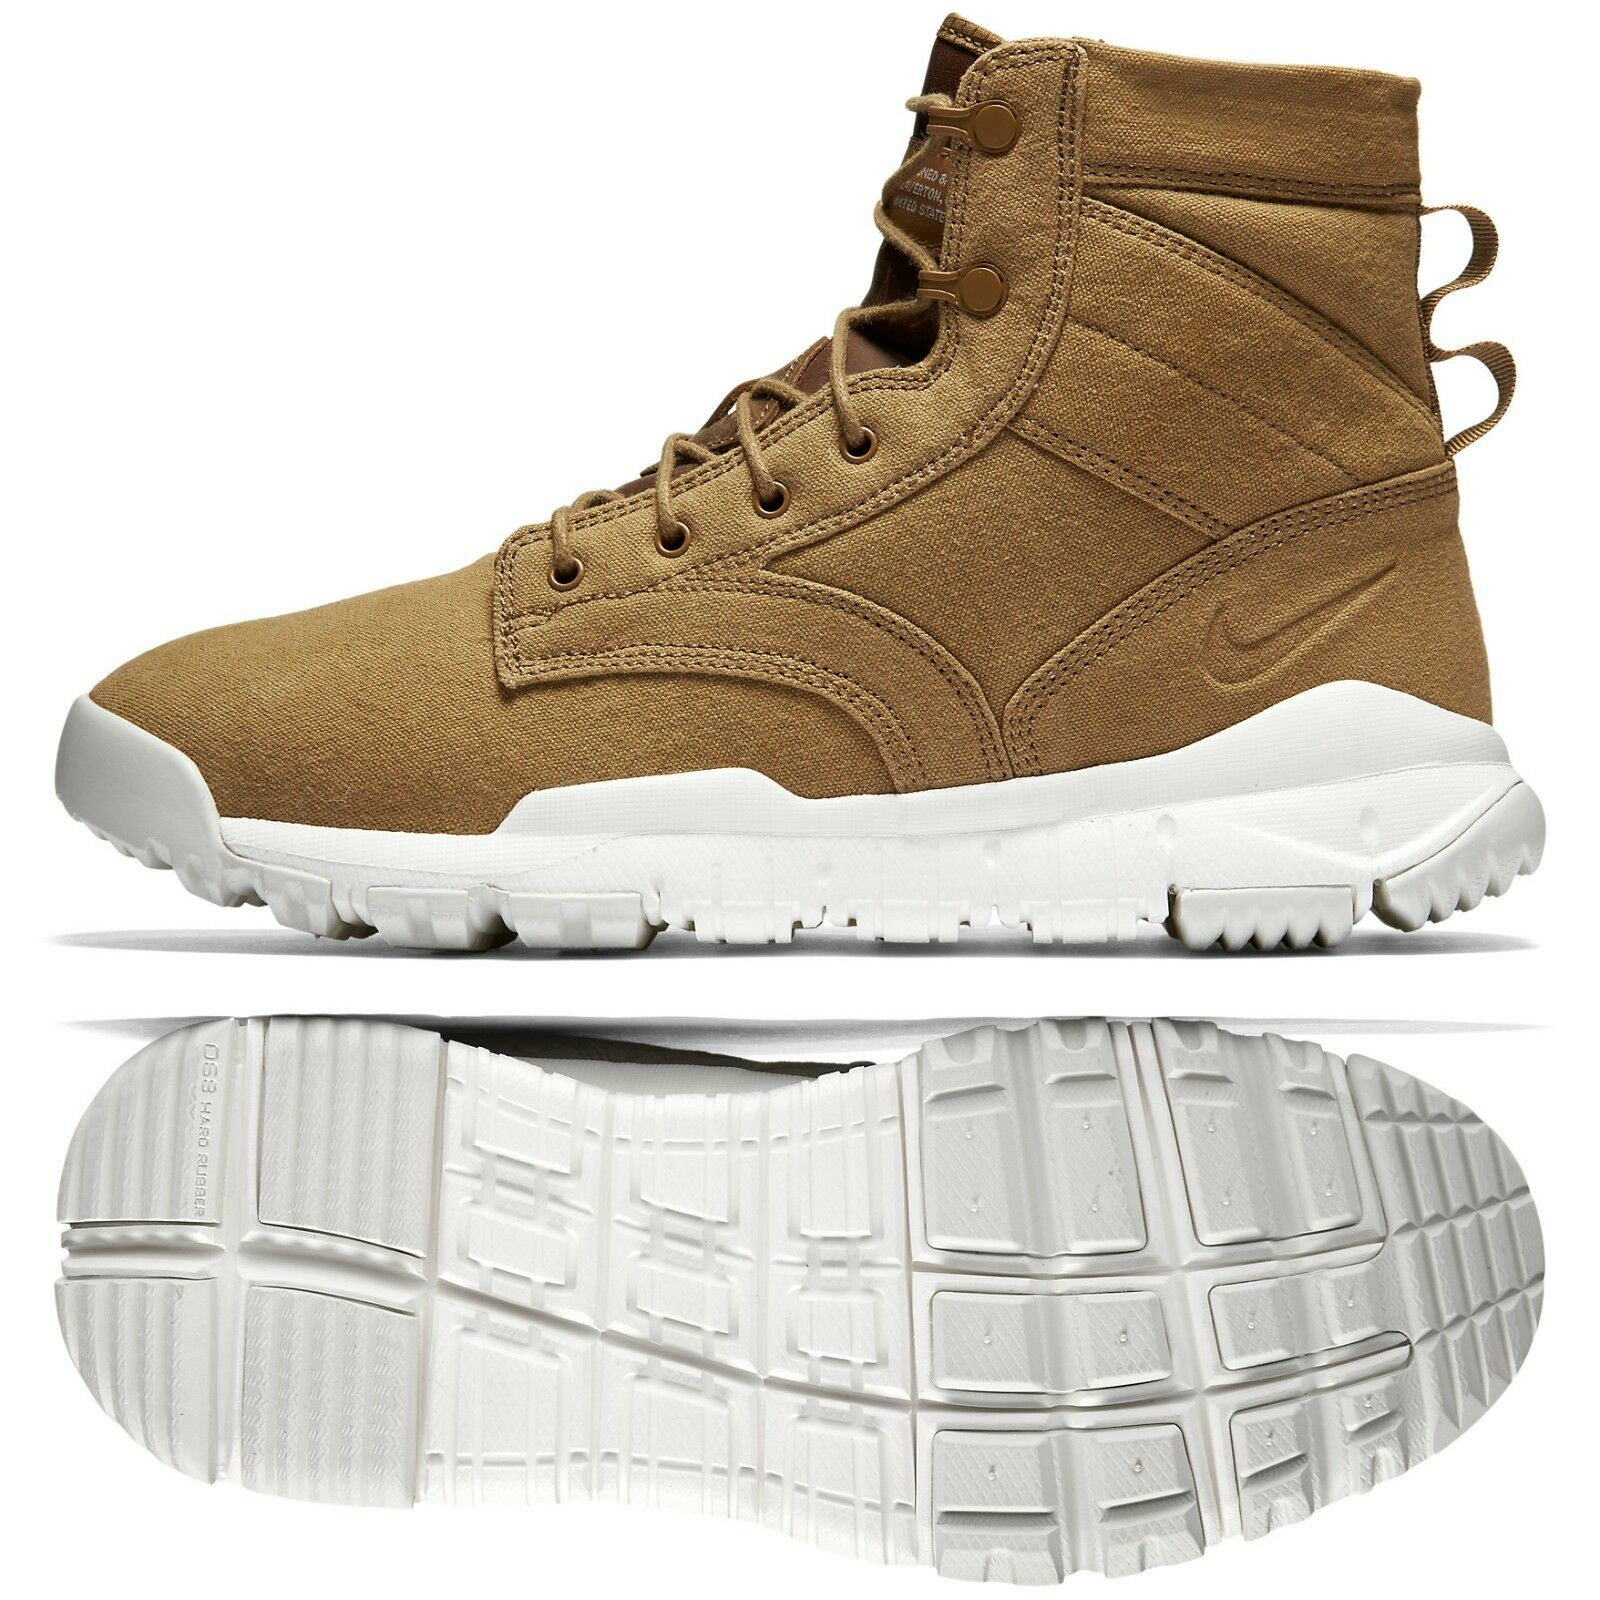 Nike SFB 6 NSW Canvas 844577-200 Golden Beige Men's Special Field Tactics Boots